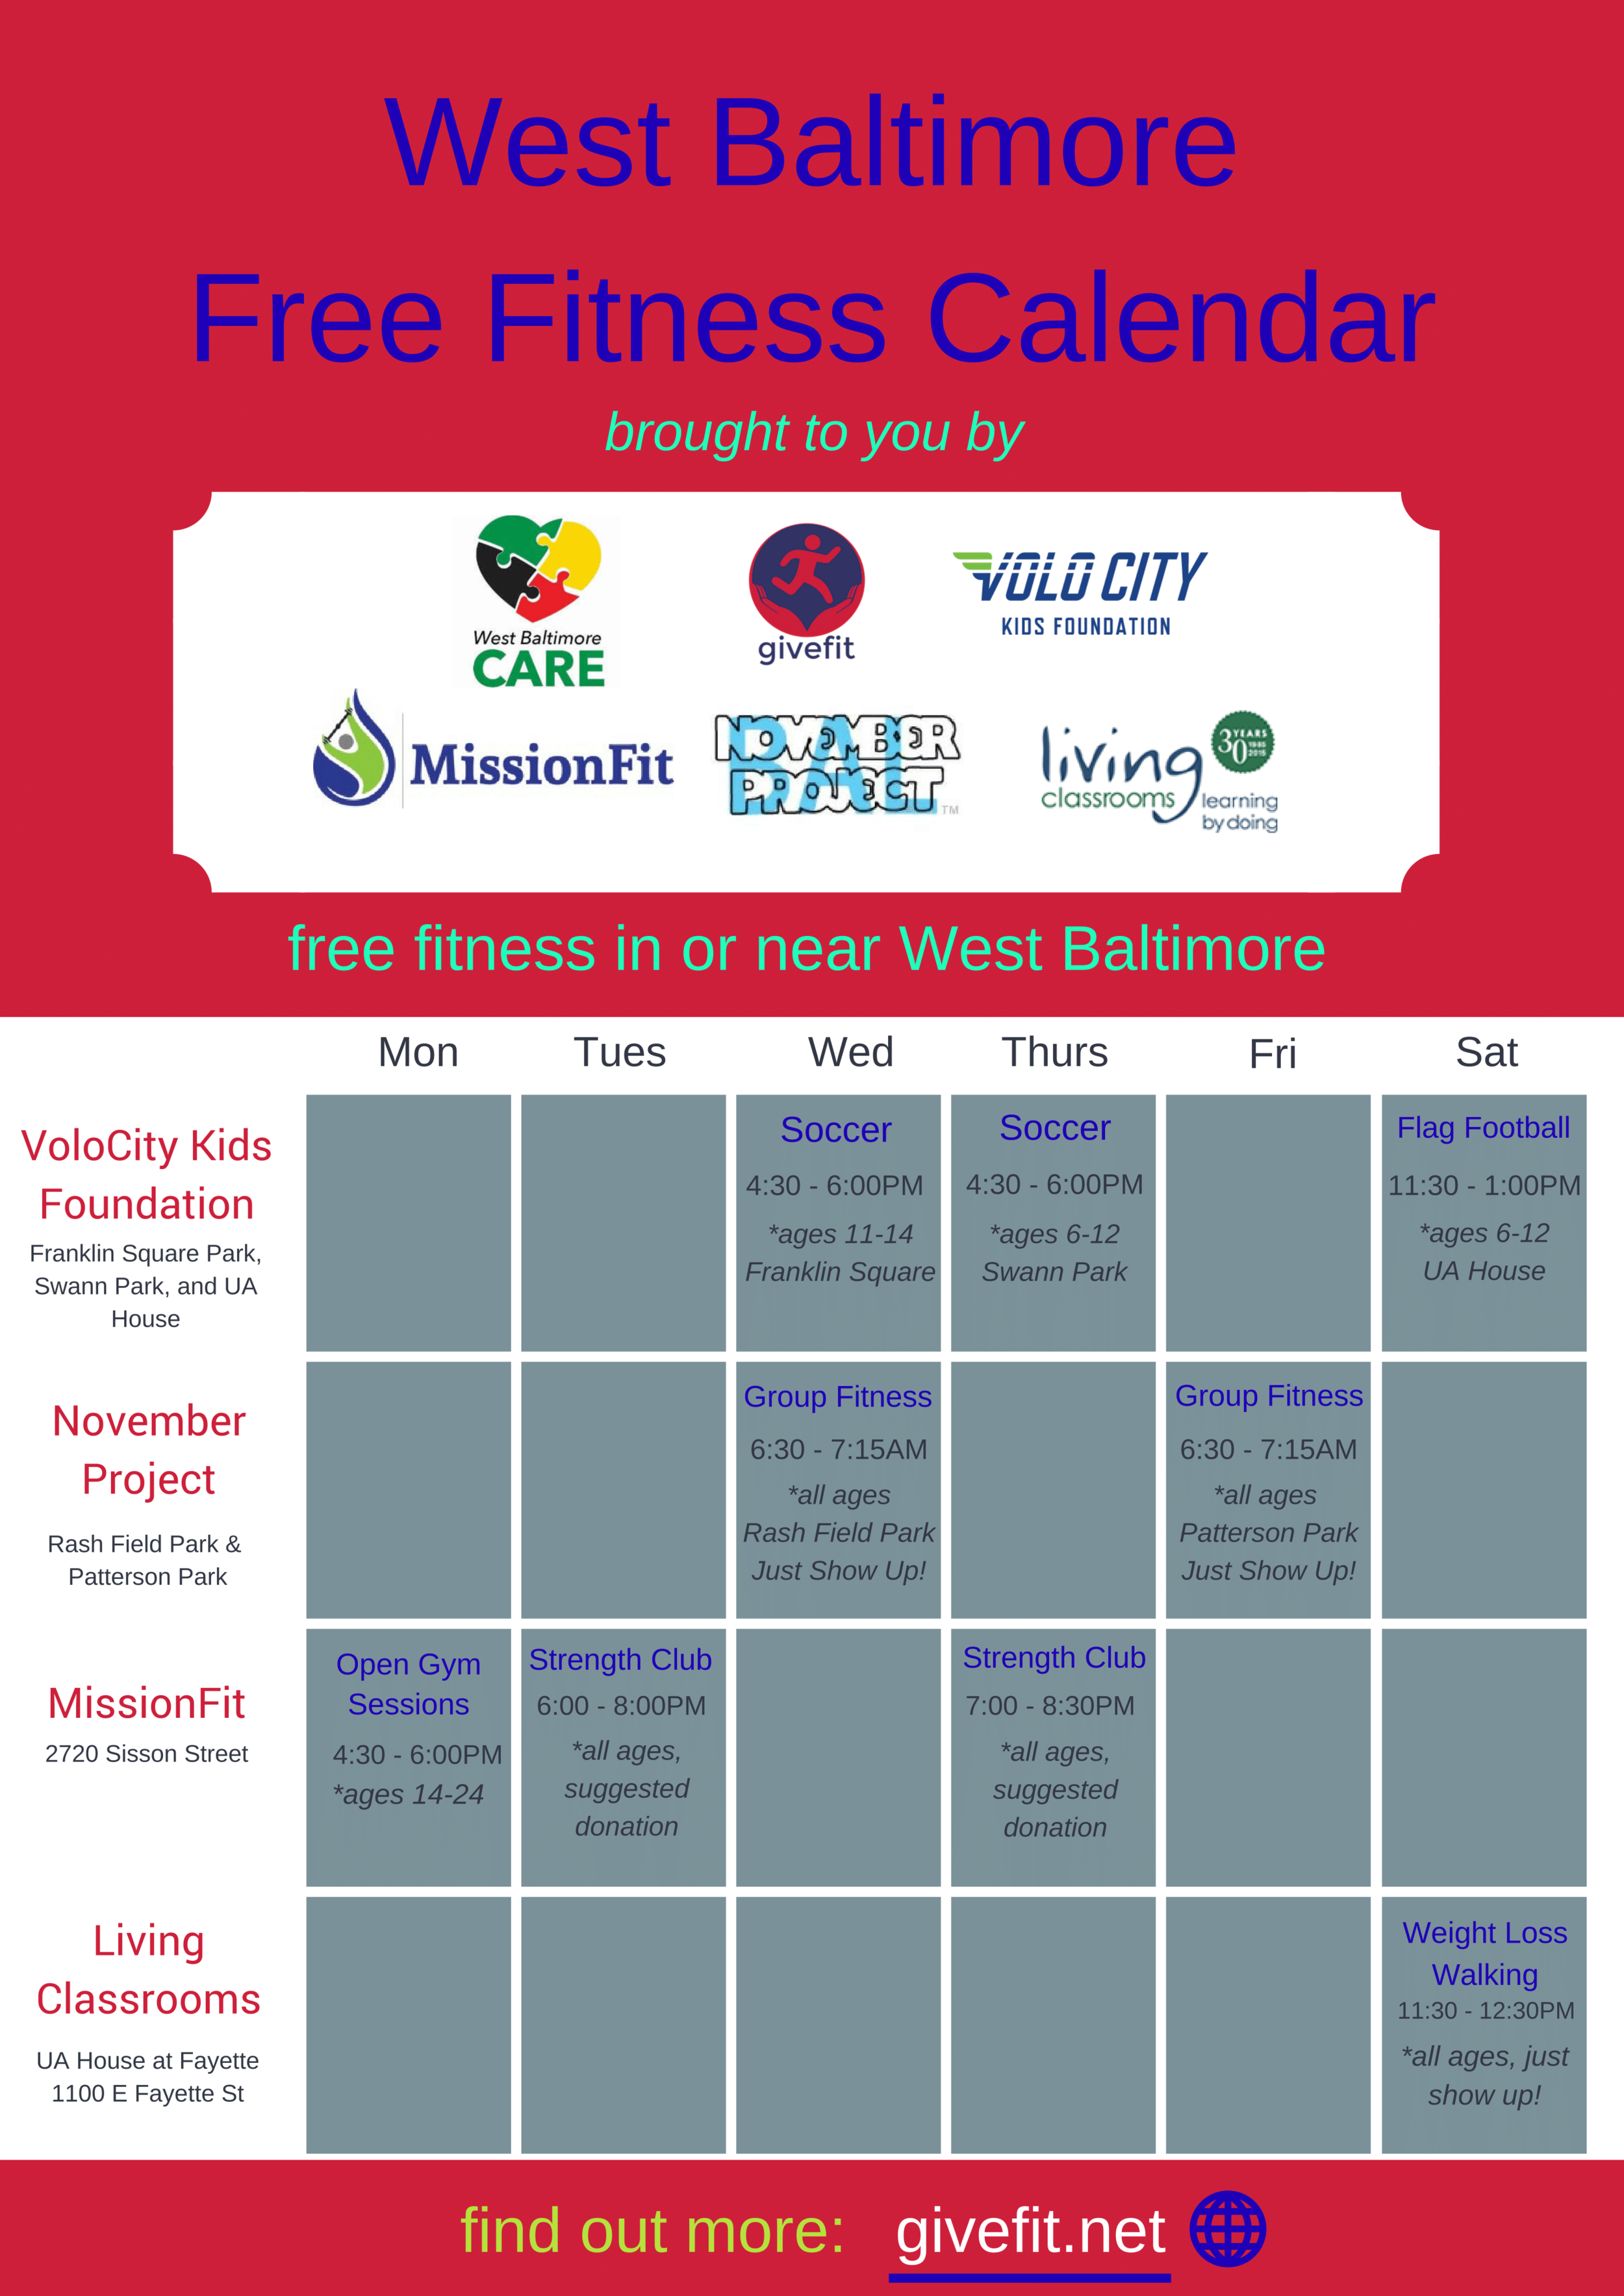 West Baltimore Free Fitness Calendar FINAL 4.26.17 PNG.png